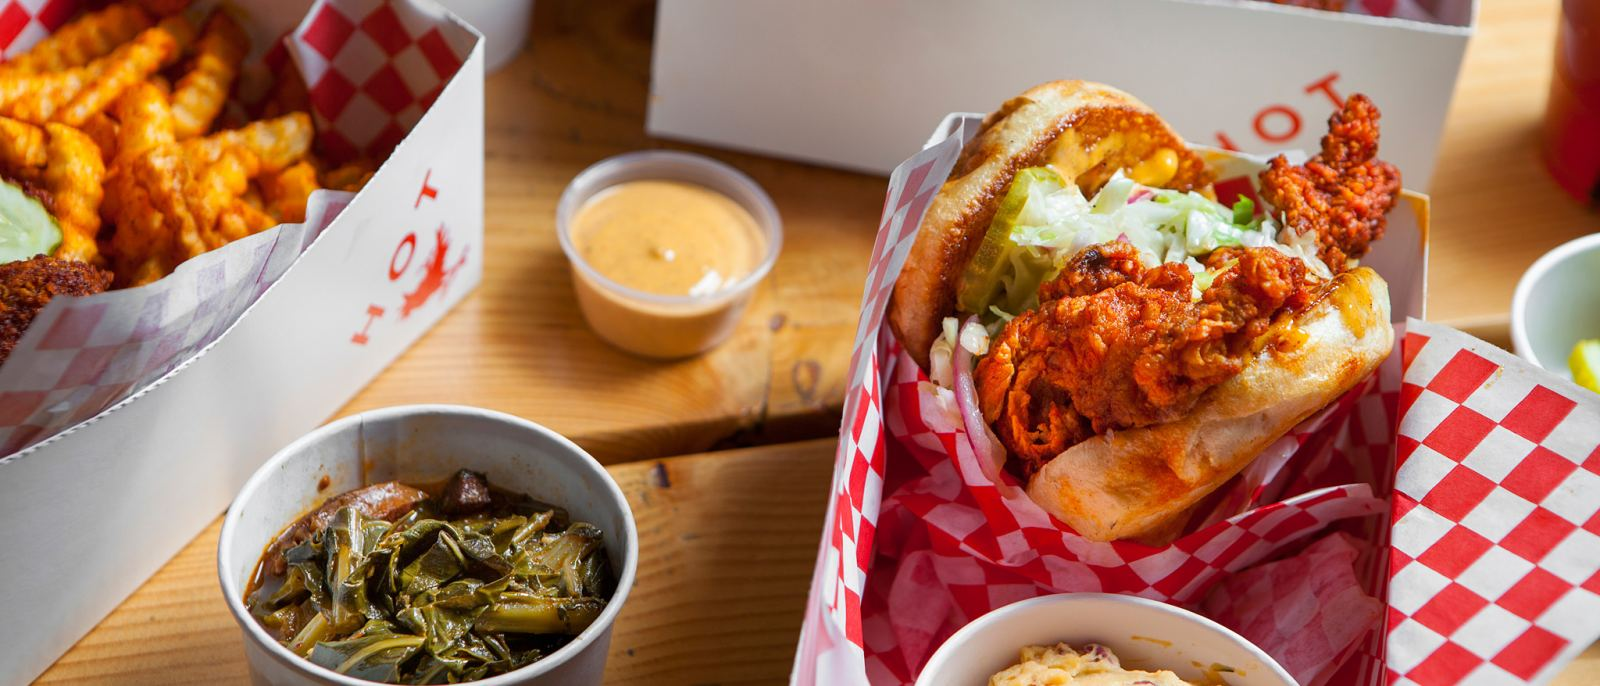 Howlin' Ray's Nashville Hot Chicken | Photo: Howlin' Ray's